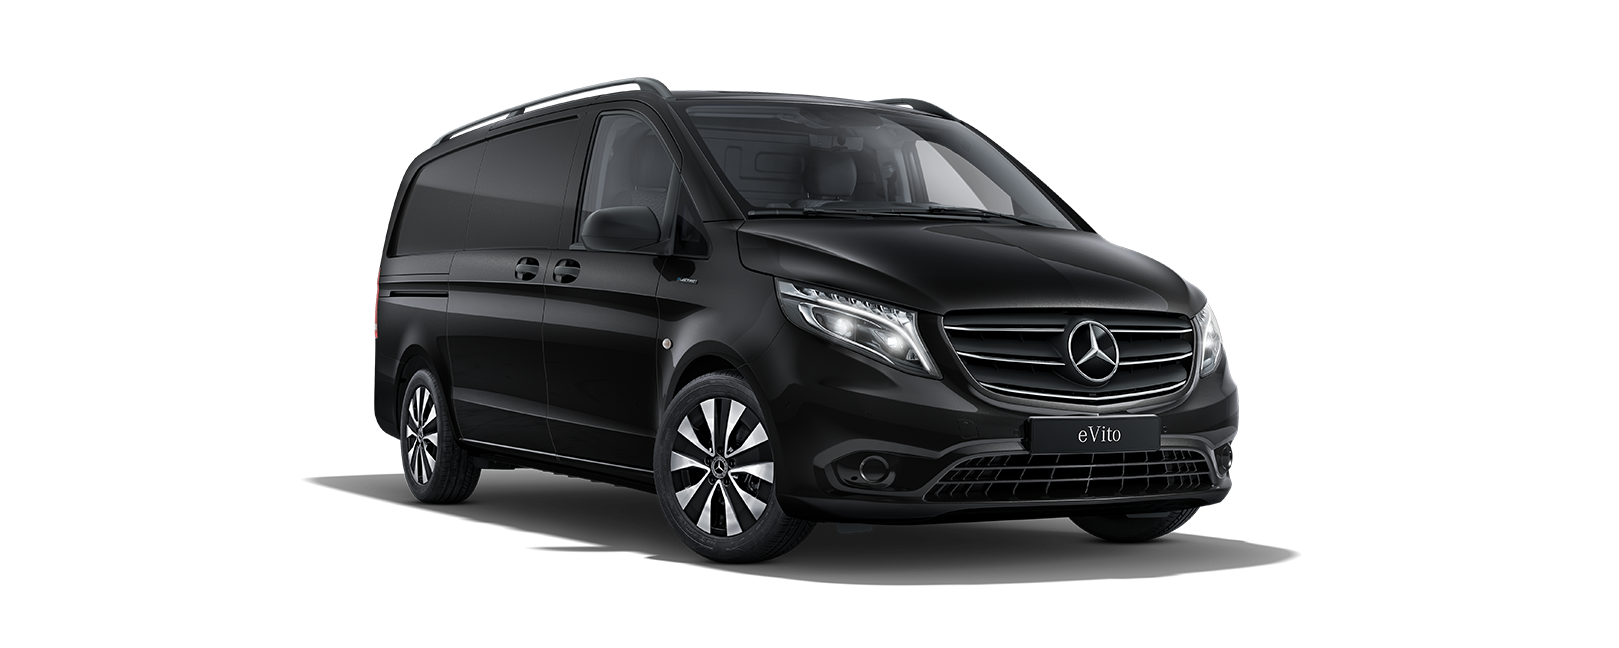 eVito Panel Van, obsidian black metallic